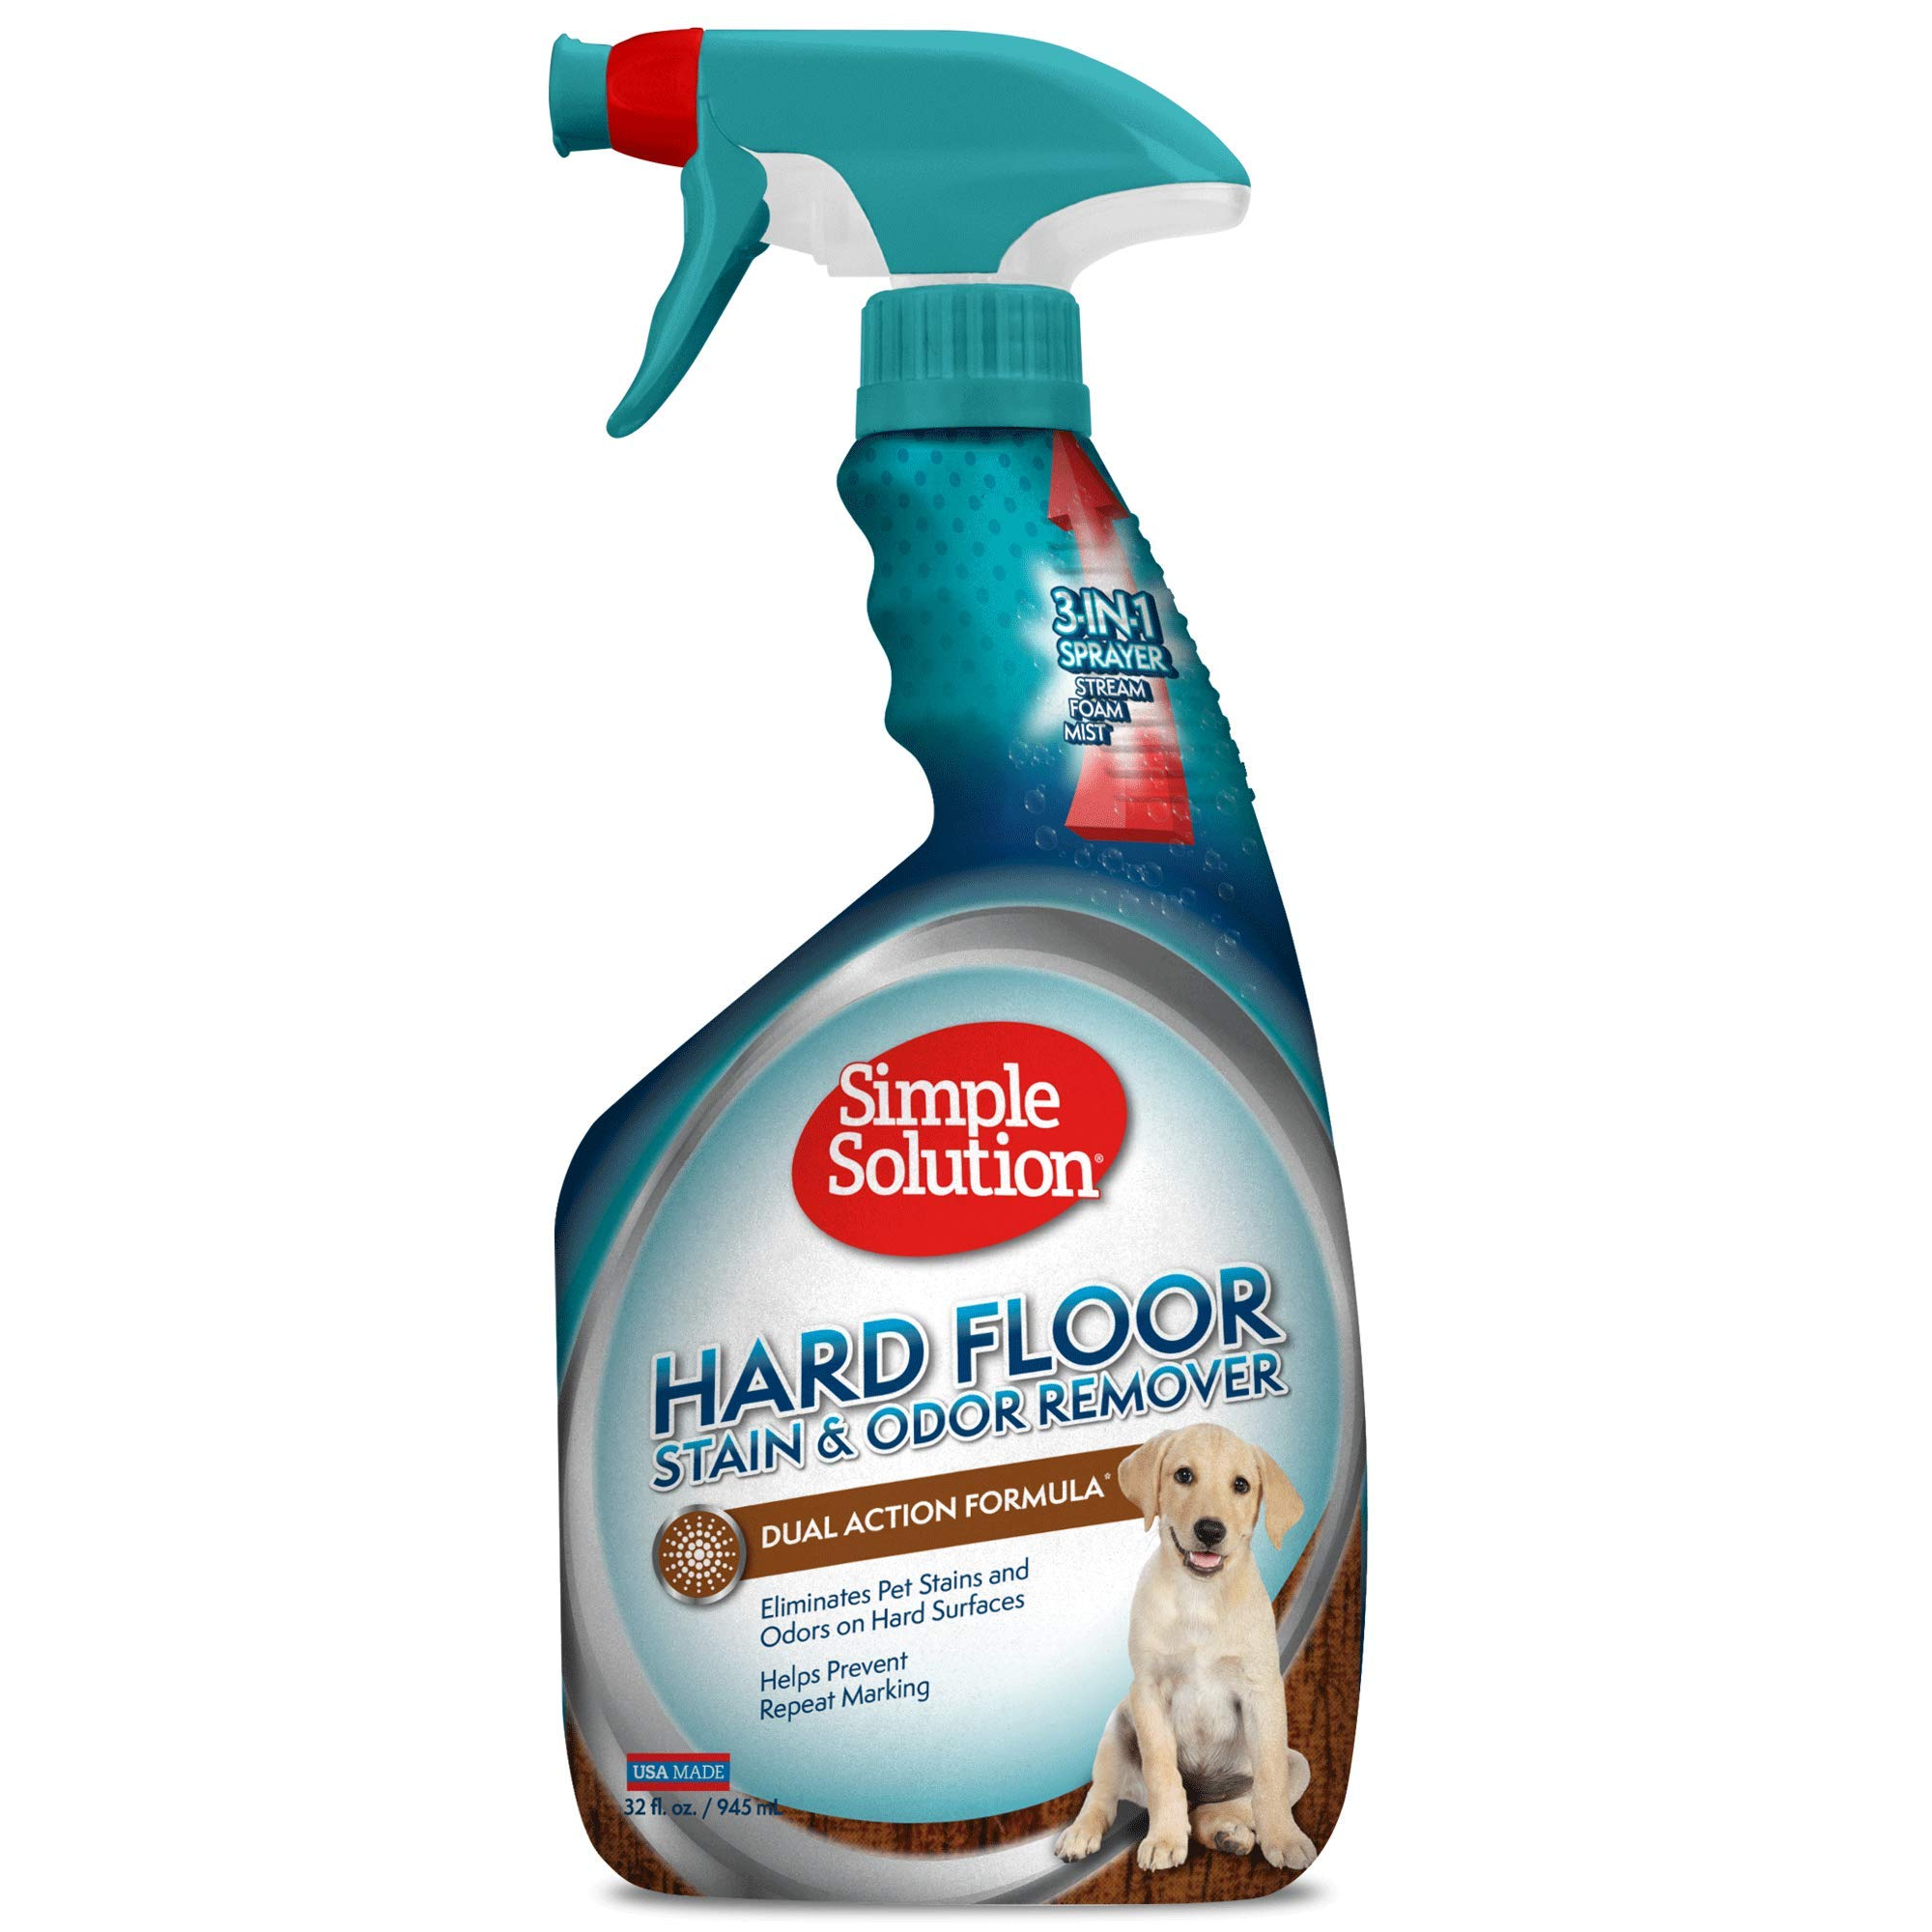 Simple Solution Remover Cleaner Hardwood